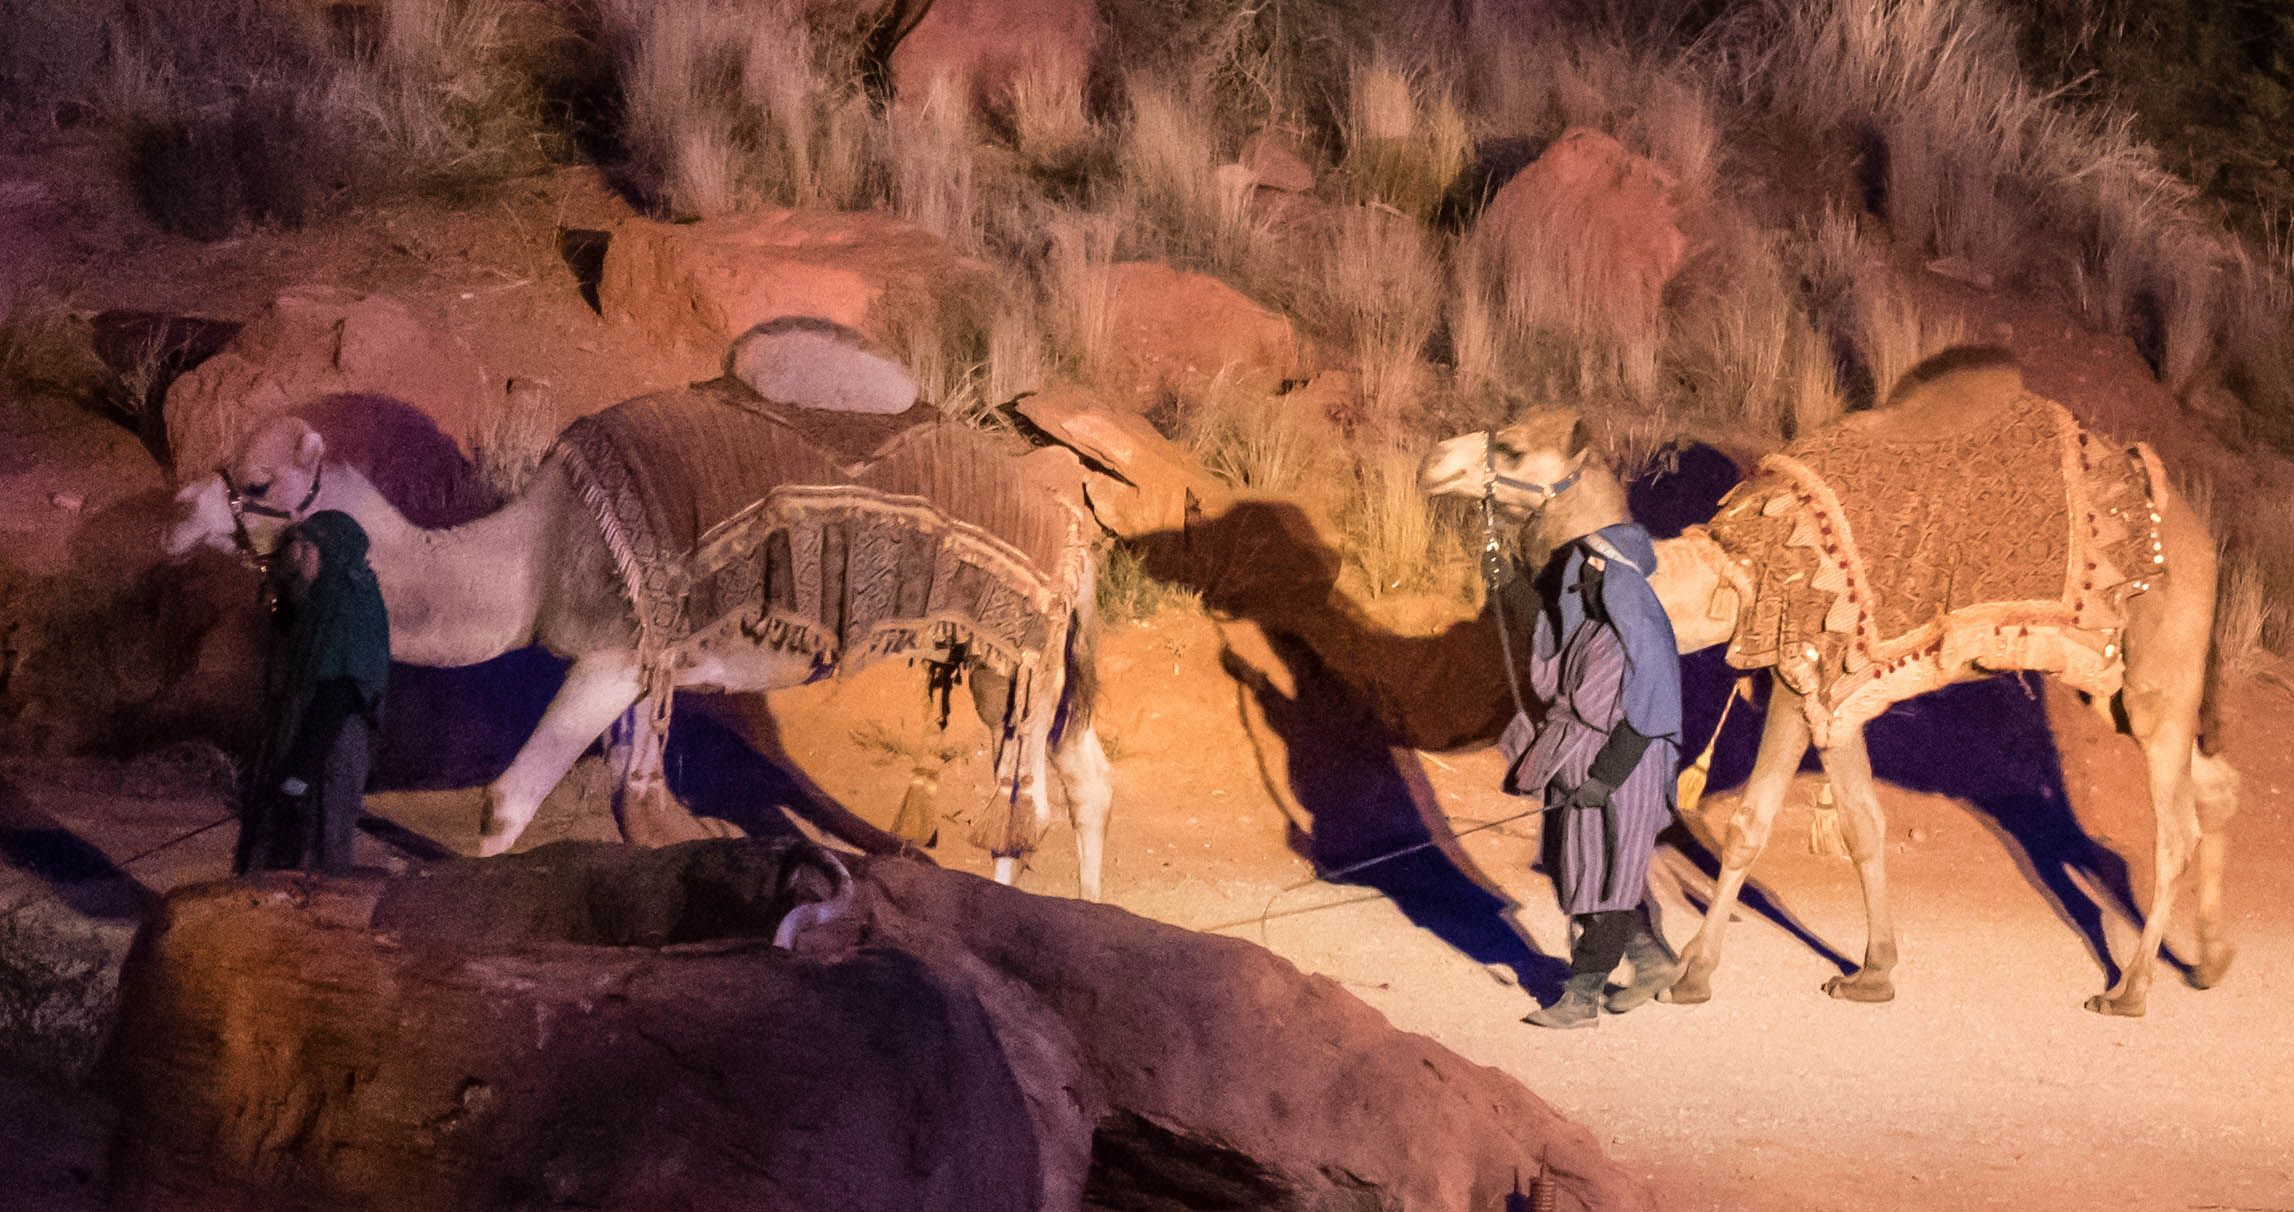 Wise men arriving with camels. Ivins, Utah, Dec. 5, 2016   Photo courtesy of Jim Lillywhite, St. George News